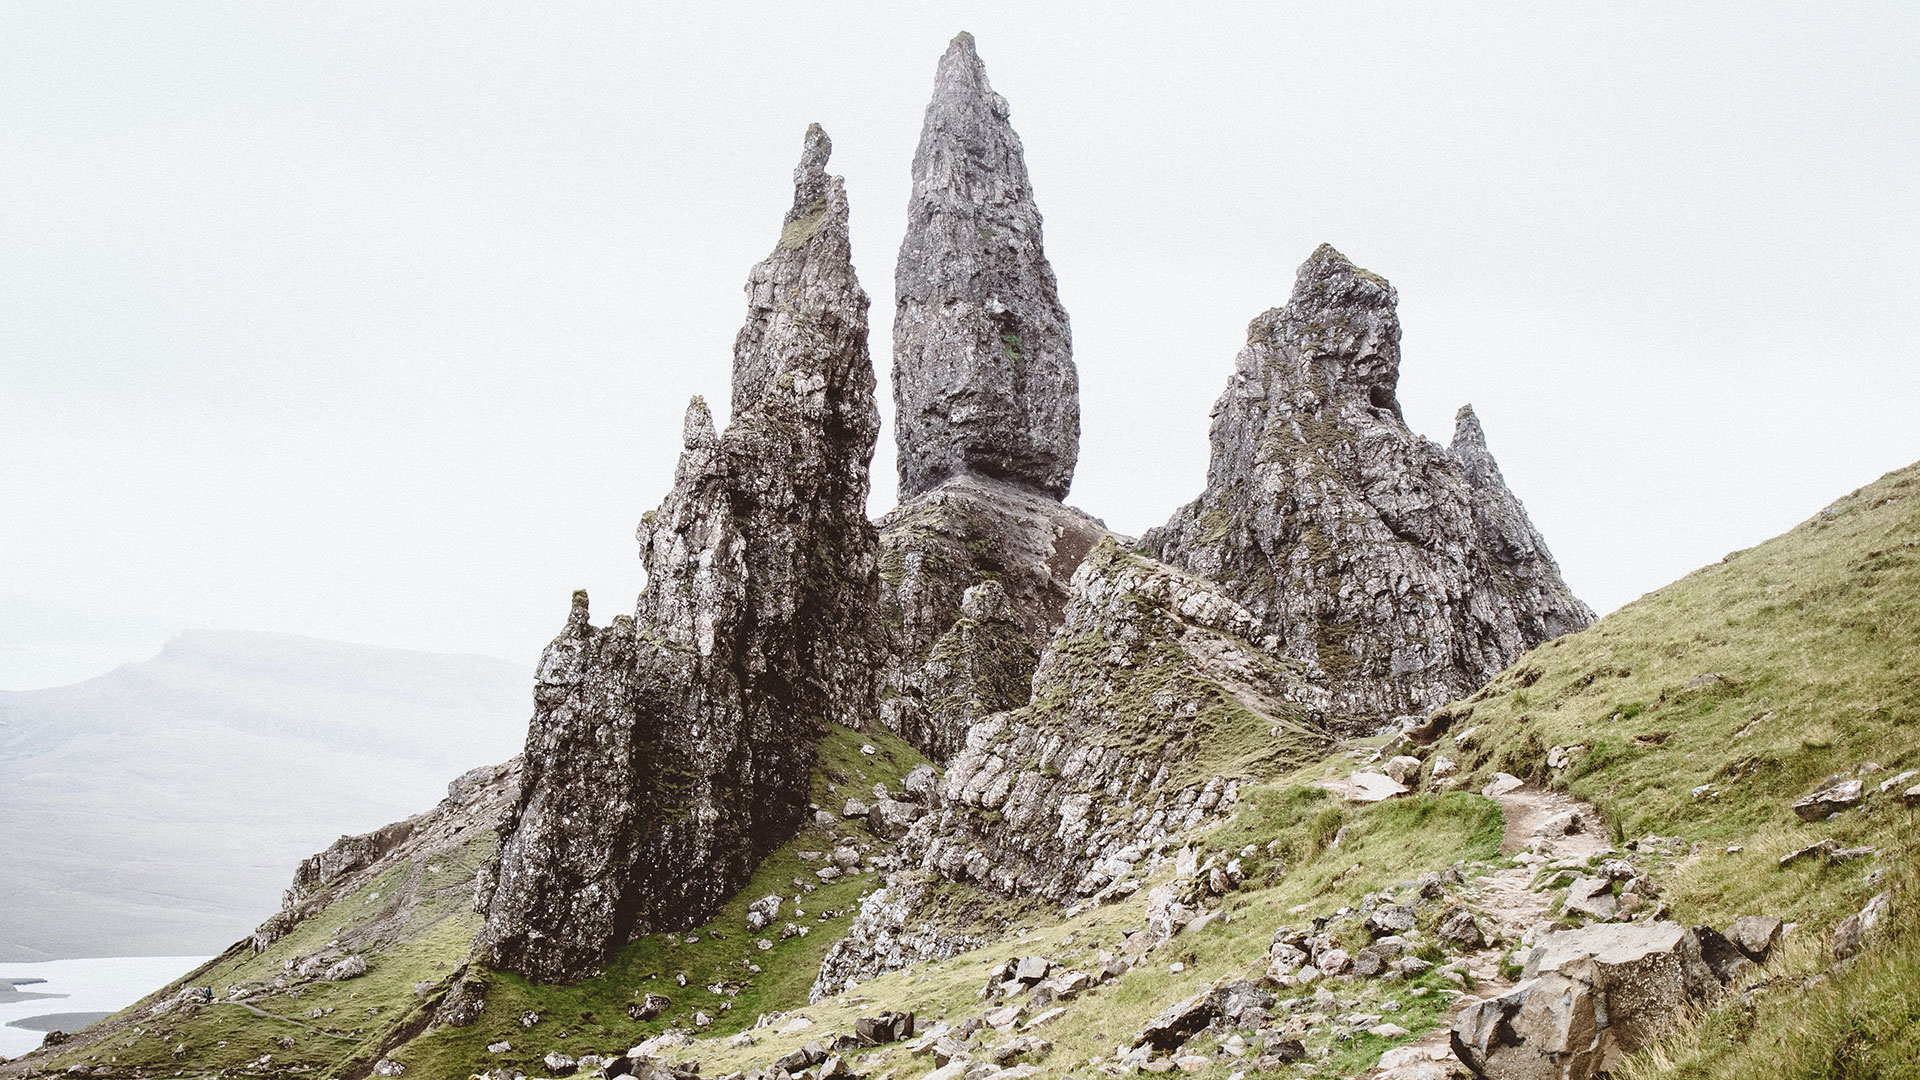 Lightyear One journeys at the Old Man of Storr, in Scotland